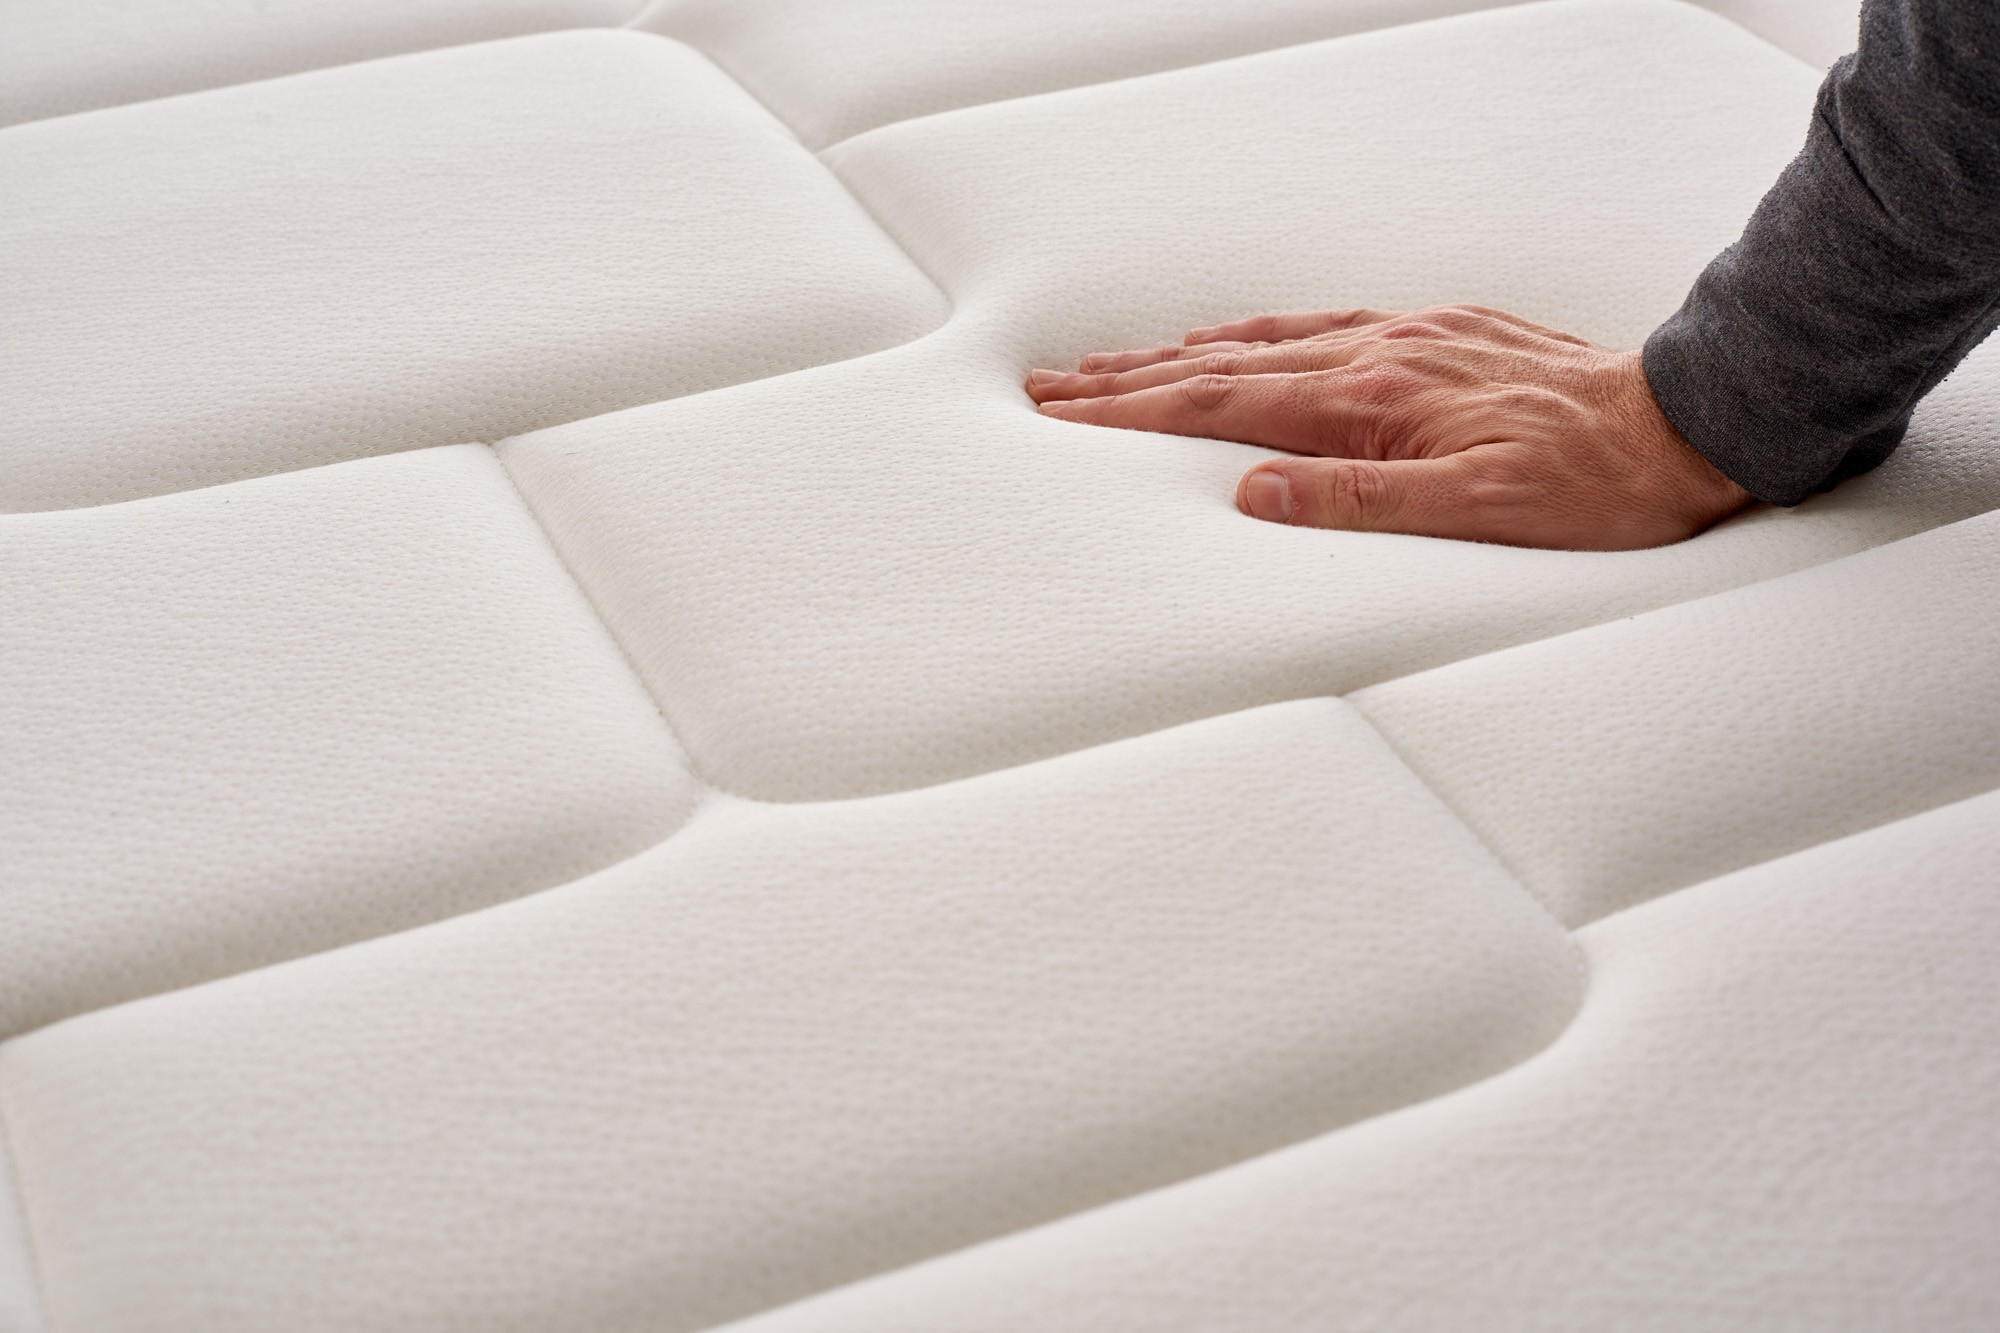 Some of the fabrics used in the manufacture of Naturalex mattresses are certified free of toxic substances by OEKO-TEX .